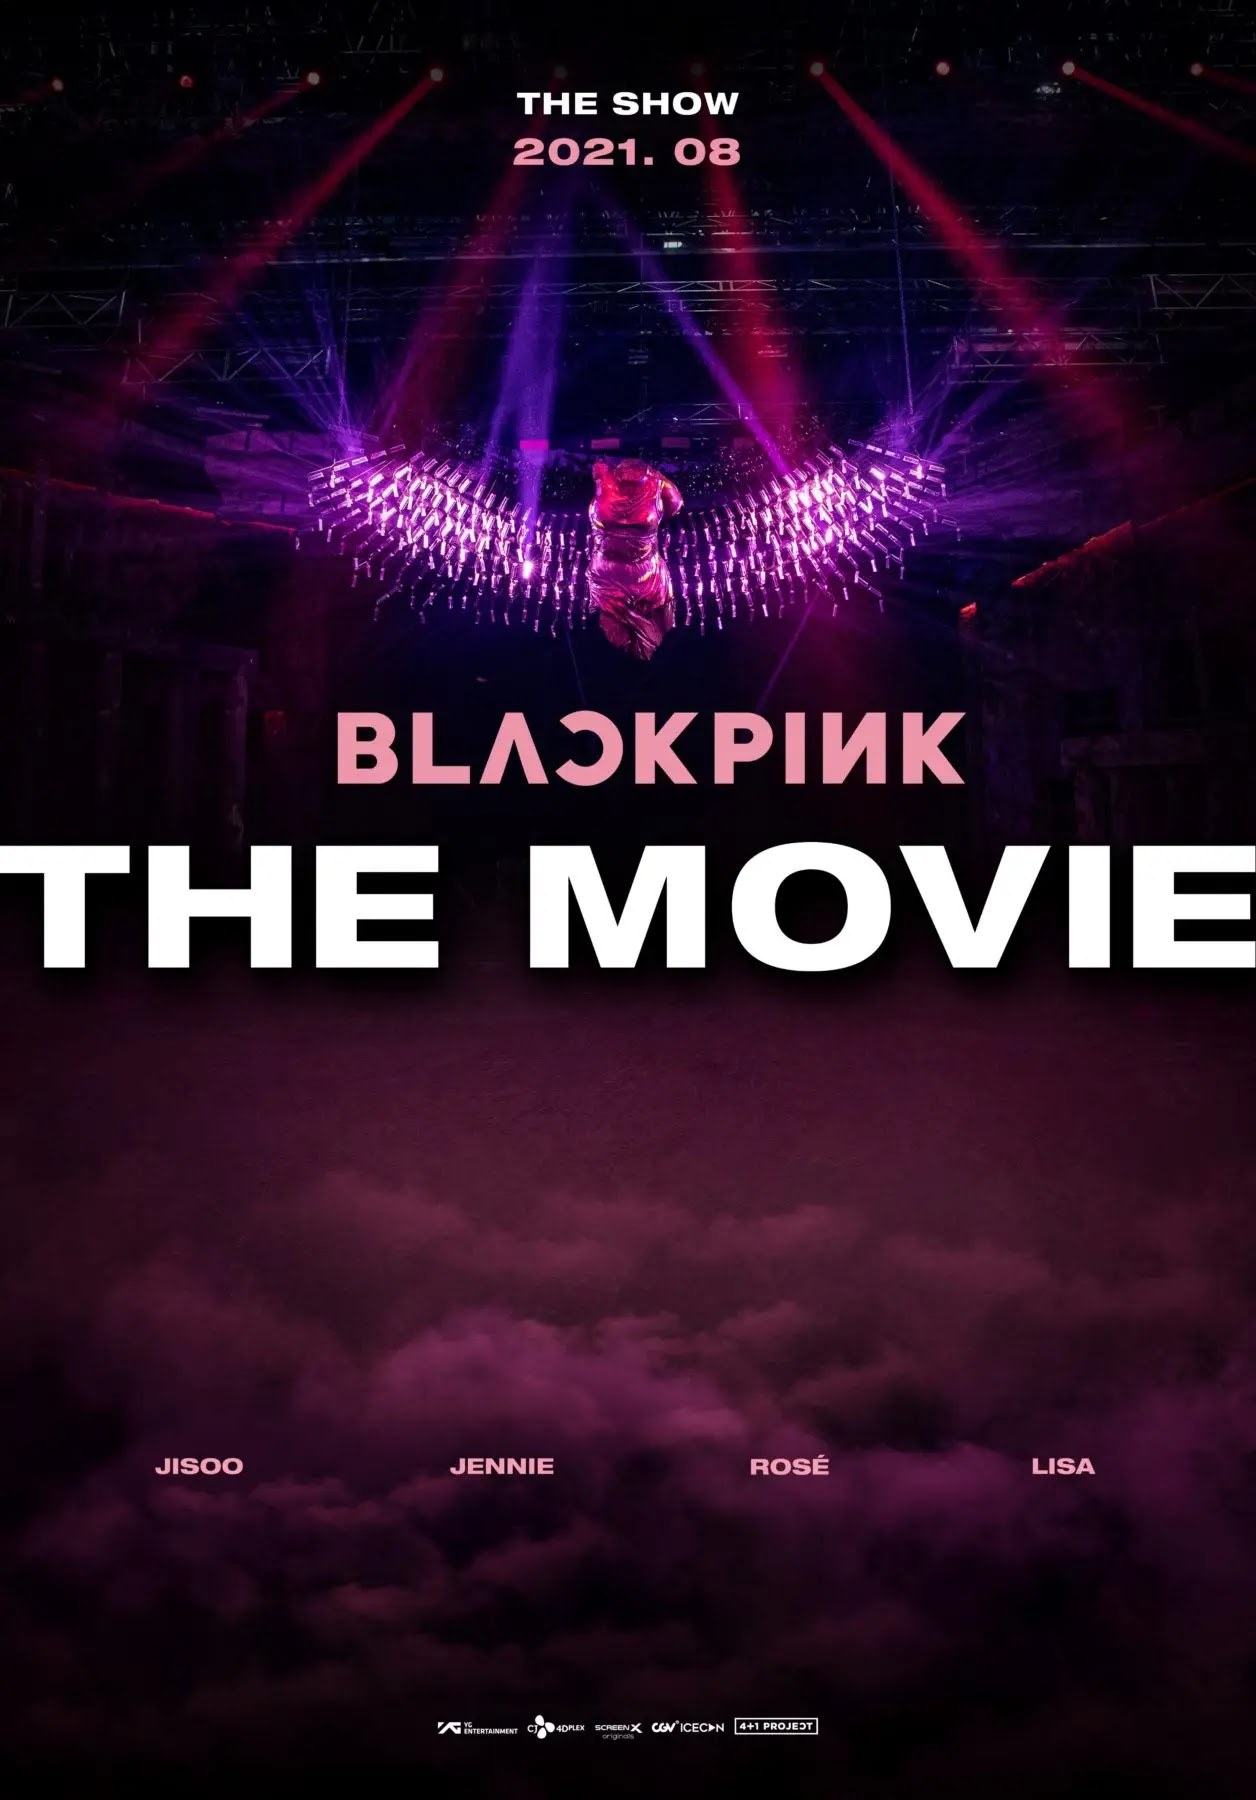 BLACKPINK Reveals First Poster For 'BLACKPINK The Movie'